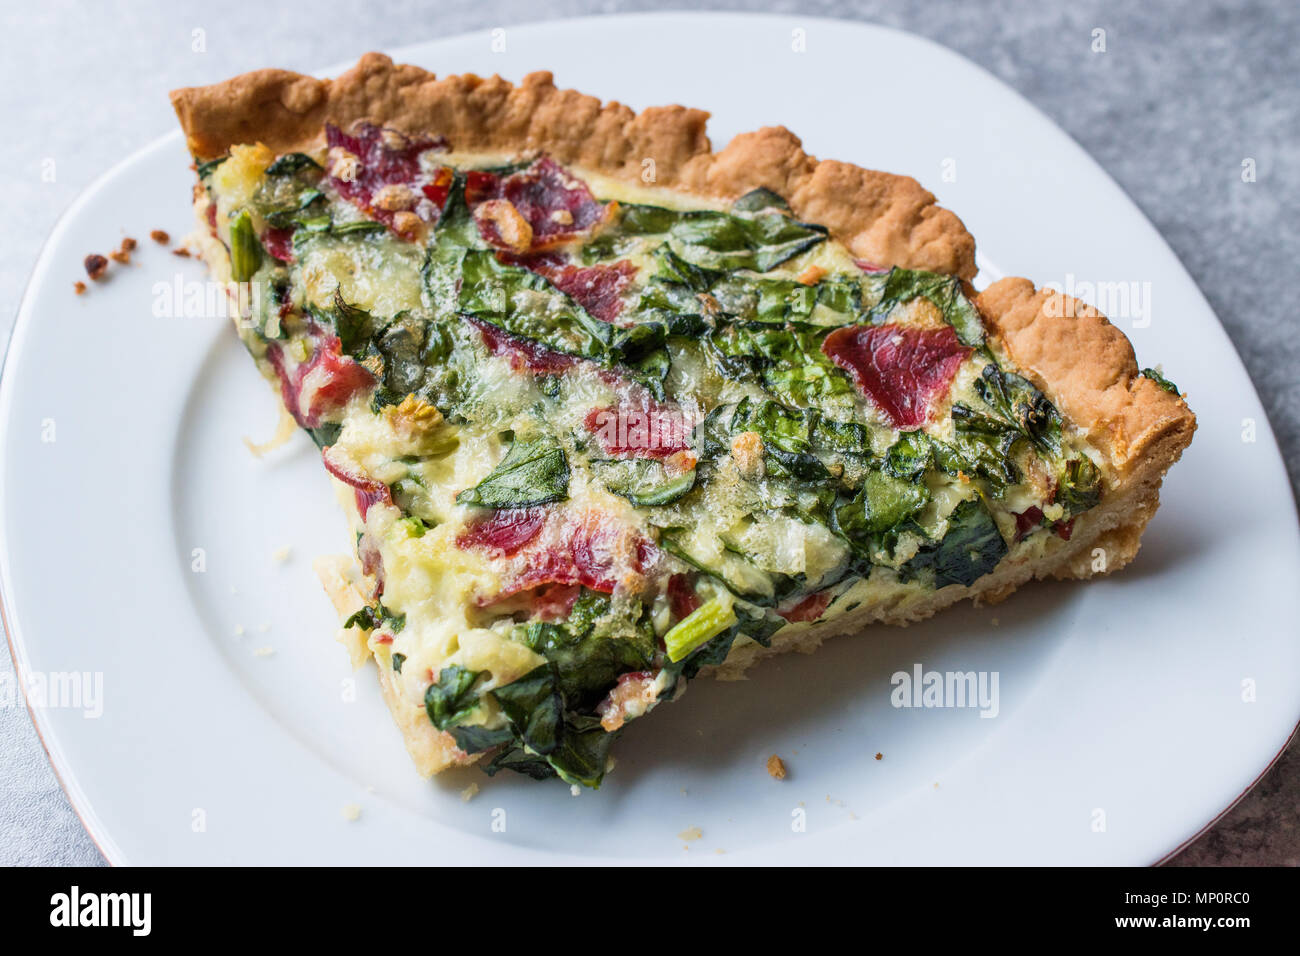 Quiche With Spinach Chard Pastrami And Cheese Traditional Food Stock Photo Alamy